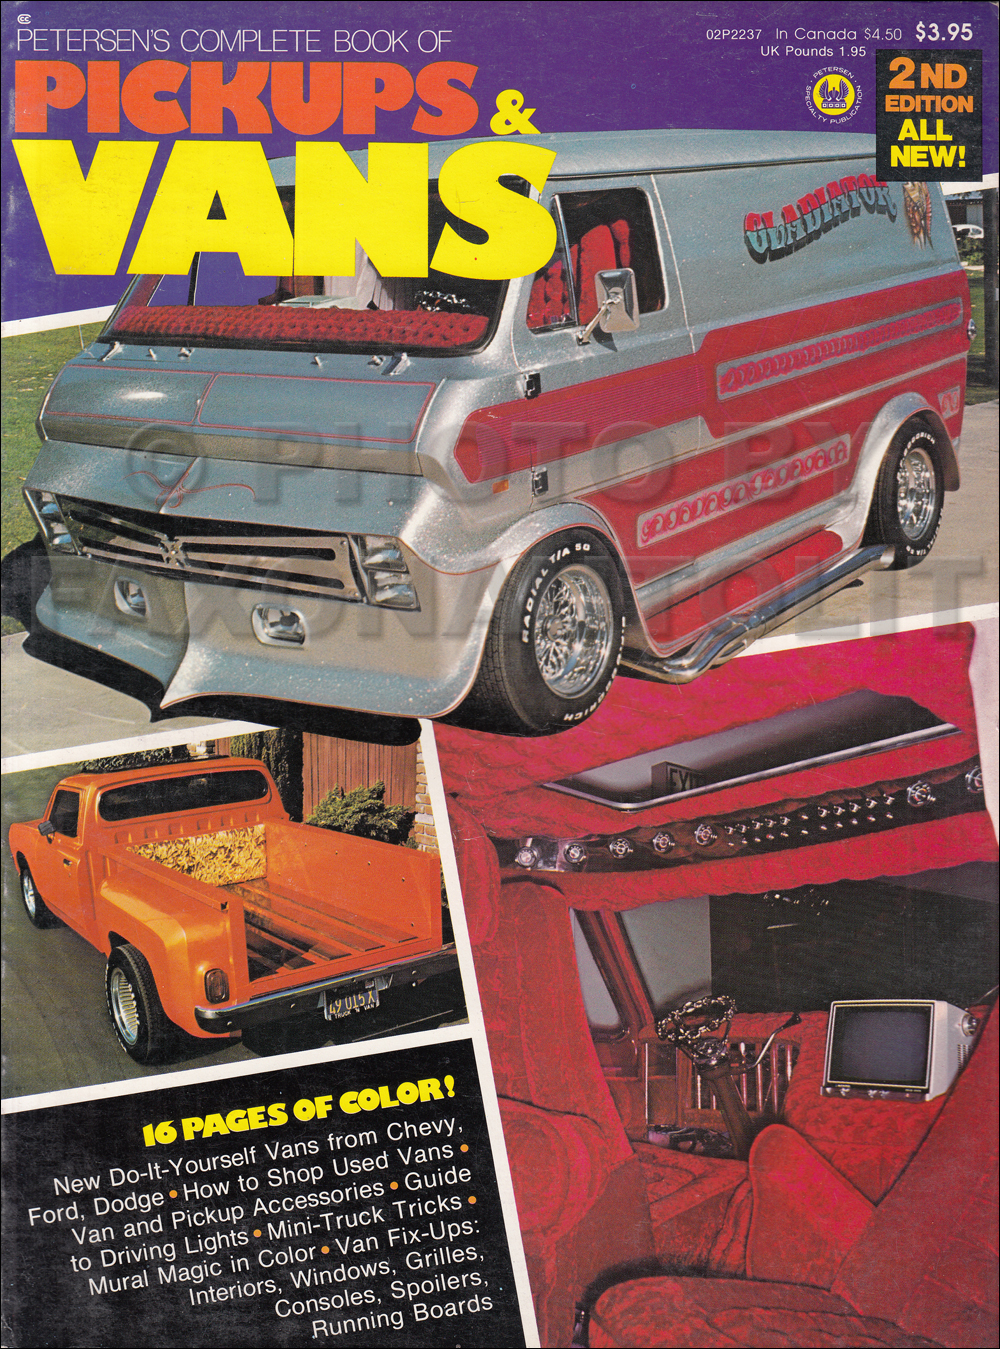 1961 1976 petersens complete book of mini pickups and custom vans 1961 1976 petersens complete book of mini pickups and custom vans 2nd edition solutioingenieria Images